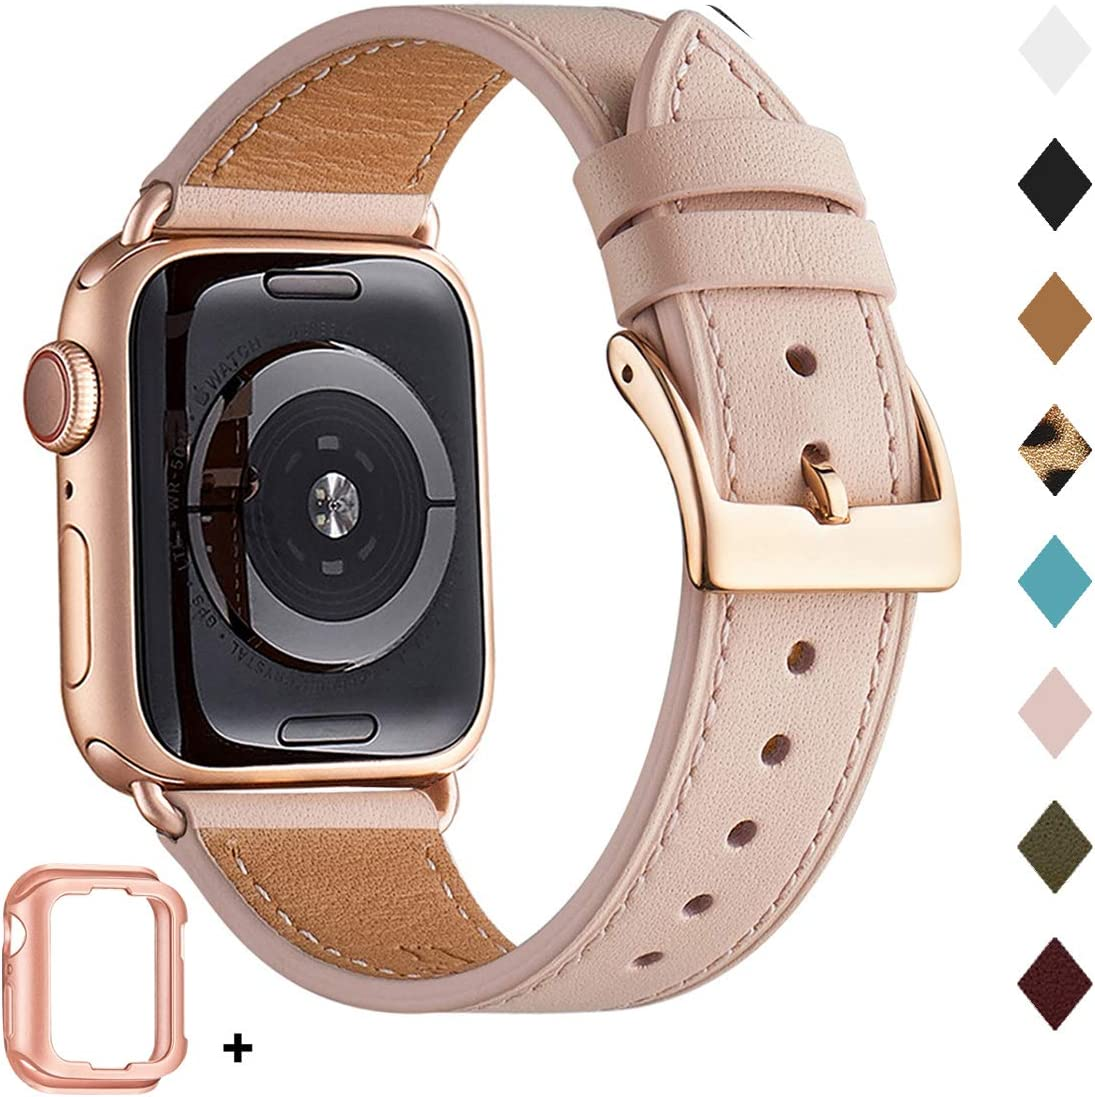 Bestig Band Compatible for Apple Watch 38mm 40mm 42mm 44mm, Genuine Leather Replacement Strap for iWatch Series 6 SE 5 4 3 2 1, Sports & Edition (Pink Sand Band+Rose Gold Adapter, 42mm 44mm)